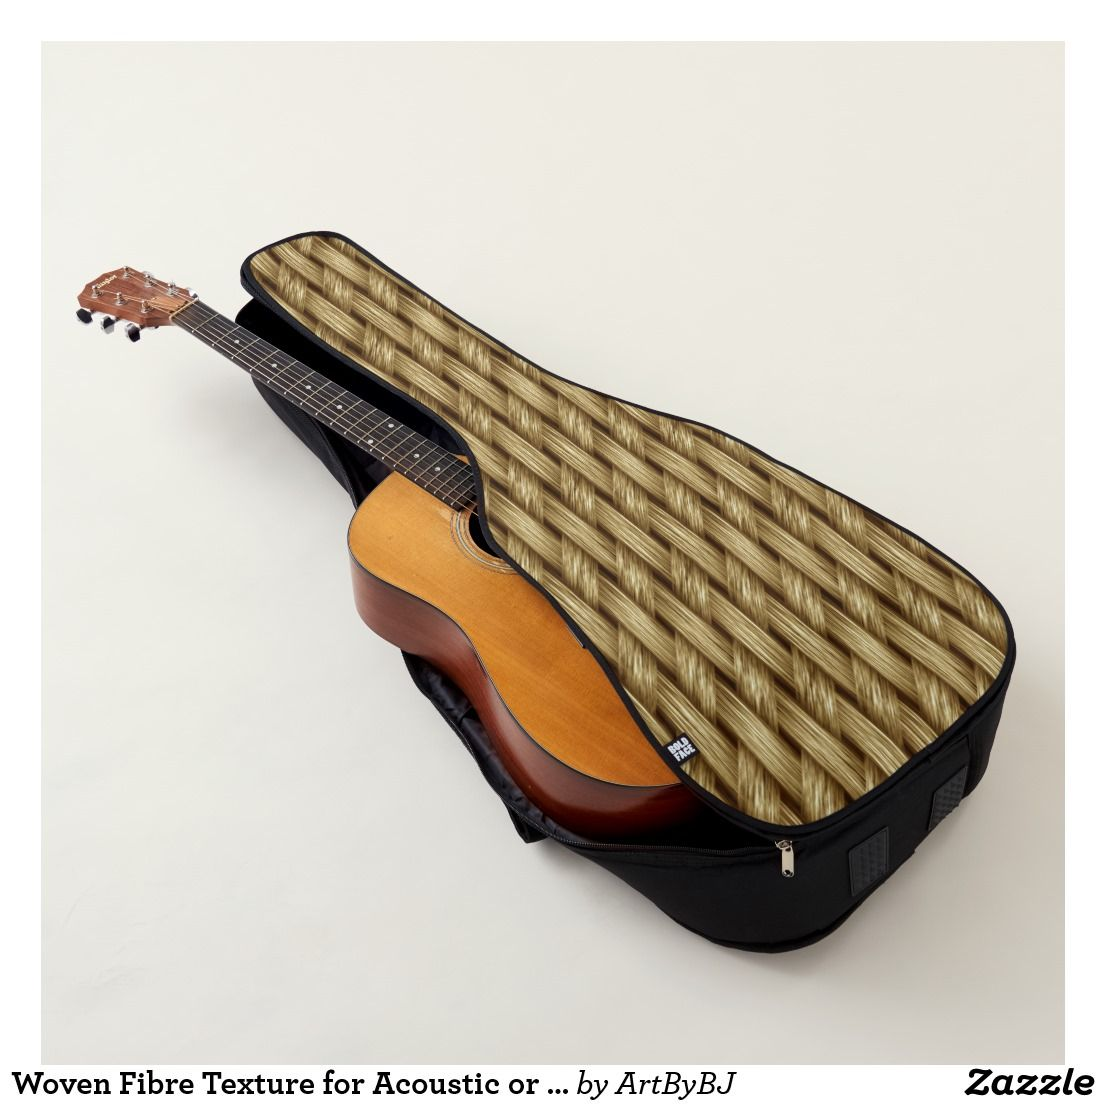 Woven Fibre Texture For Acoustic Or Electric Guitar Case You Can Order This